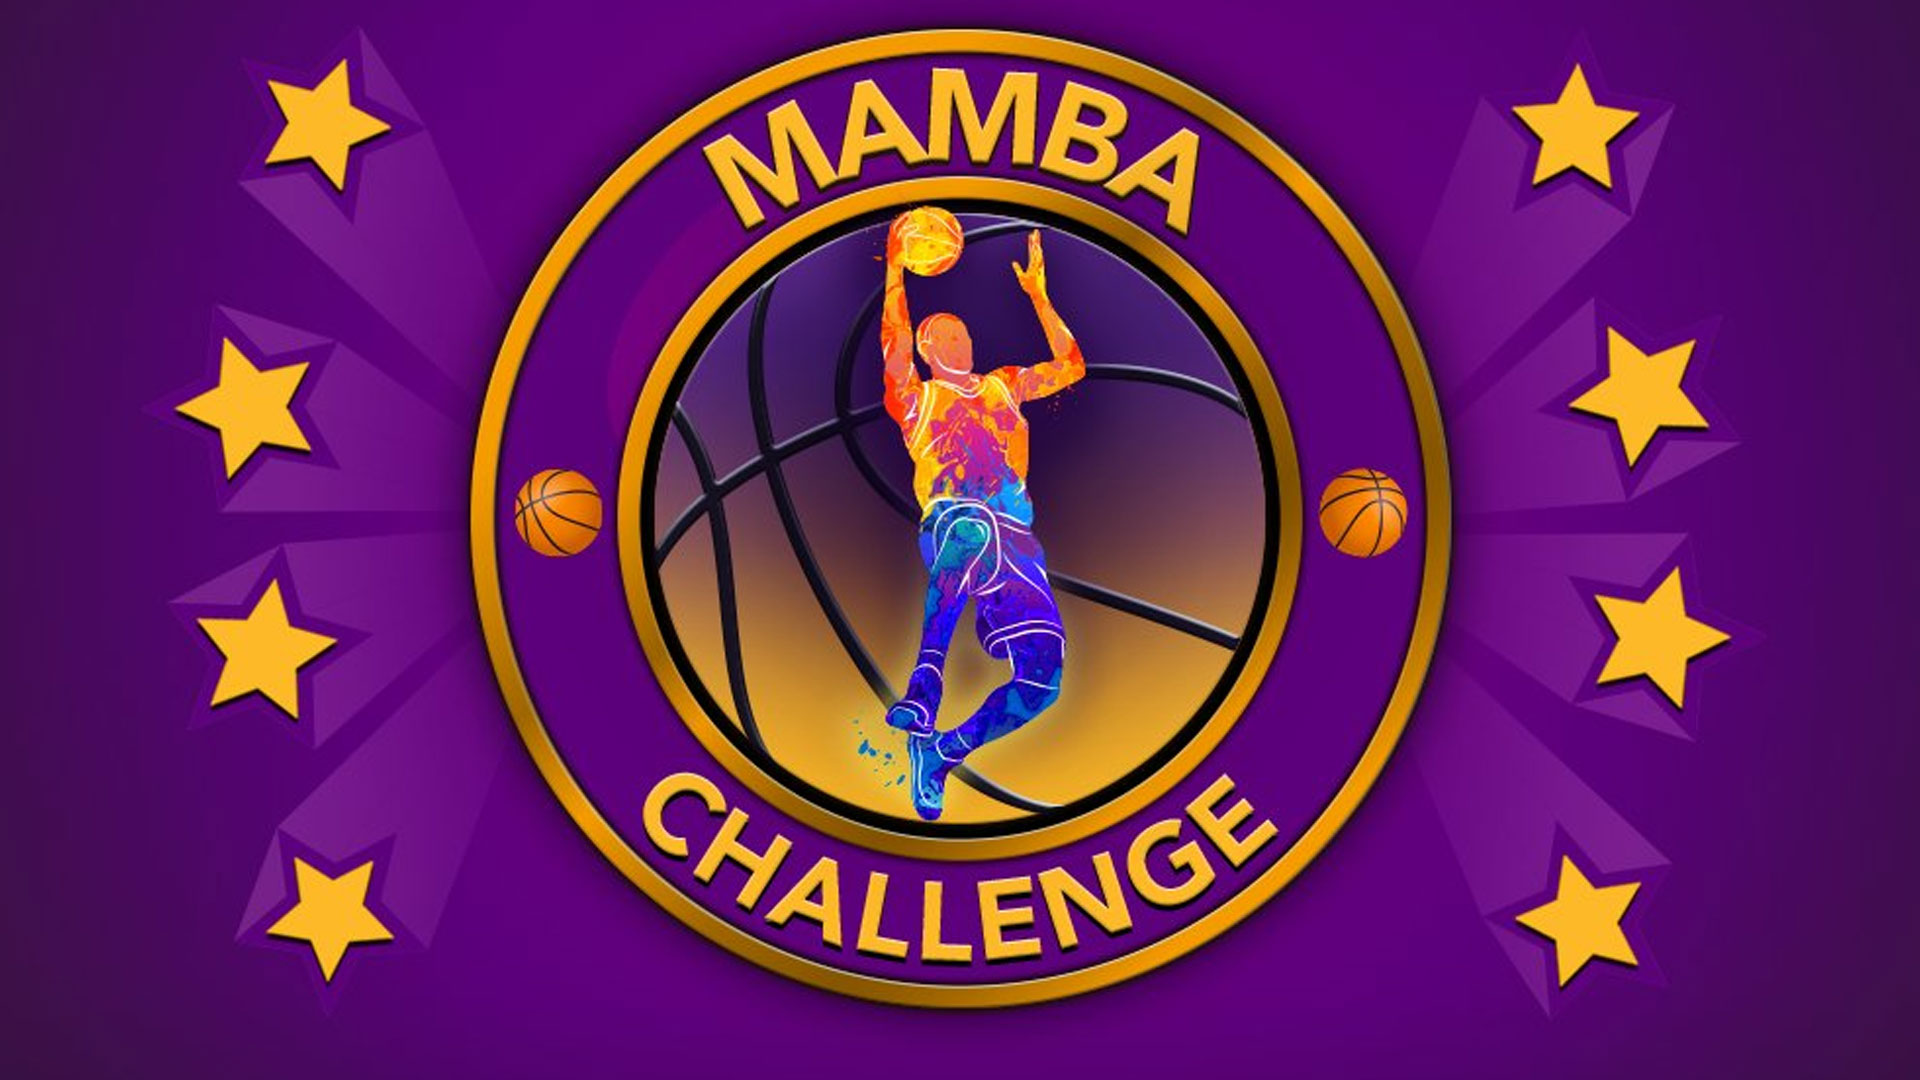 Bitlife Guide – How to Complete the Mamba Challenge in Bitlife